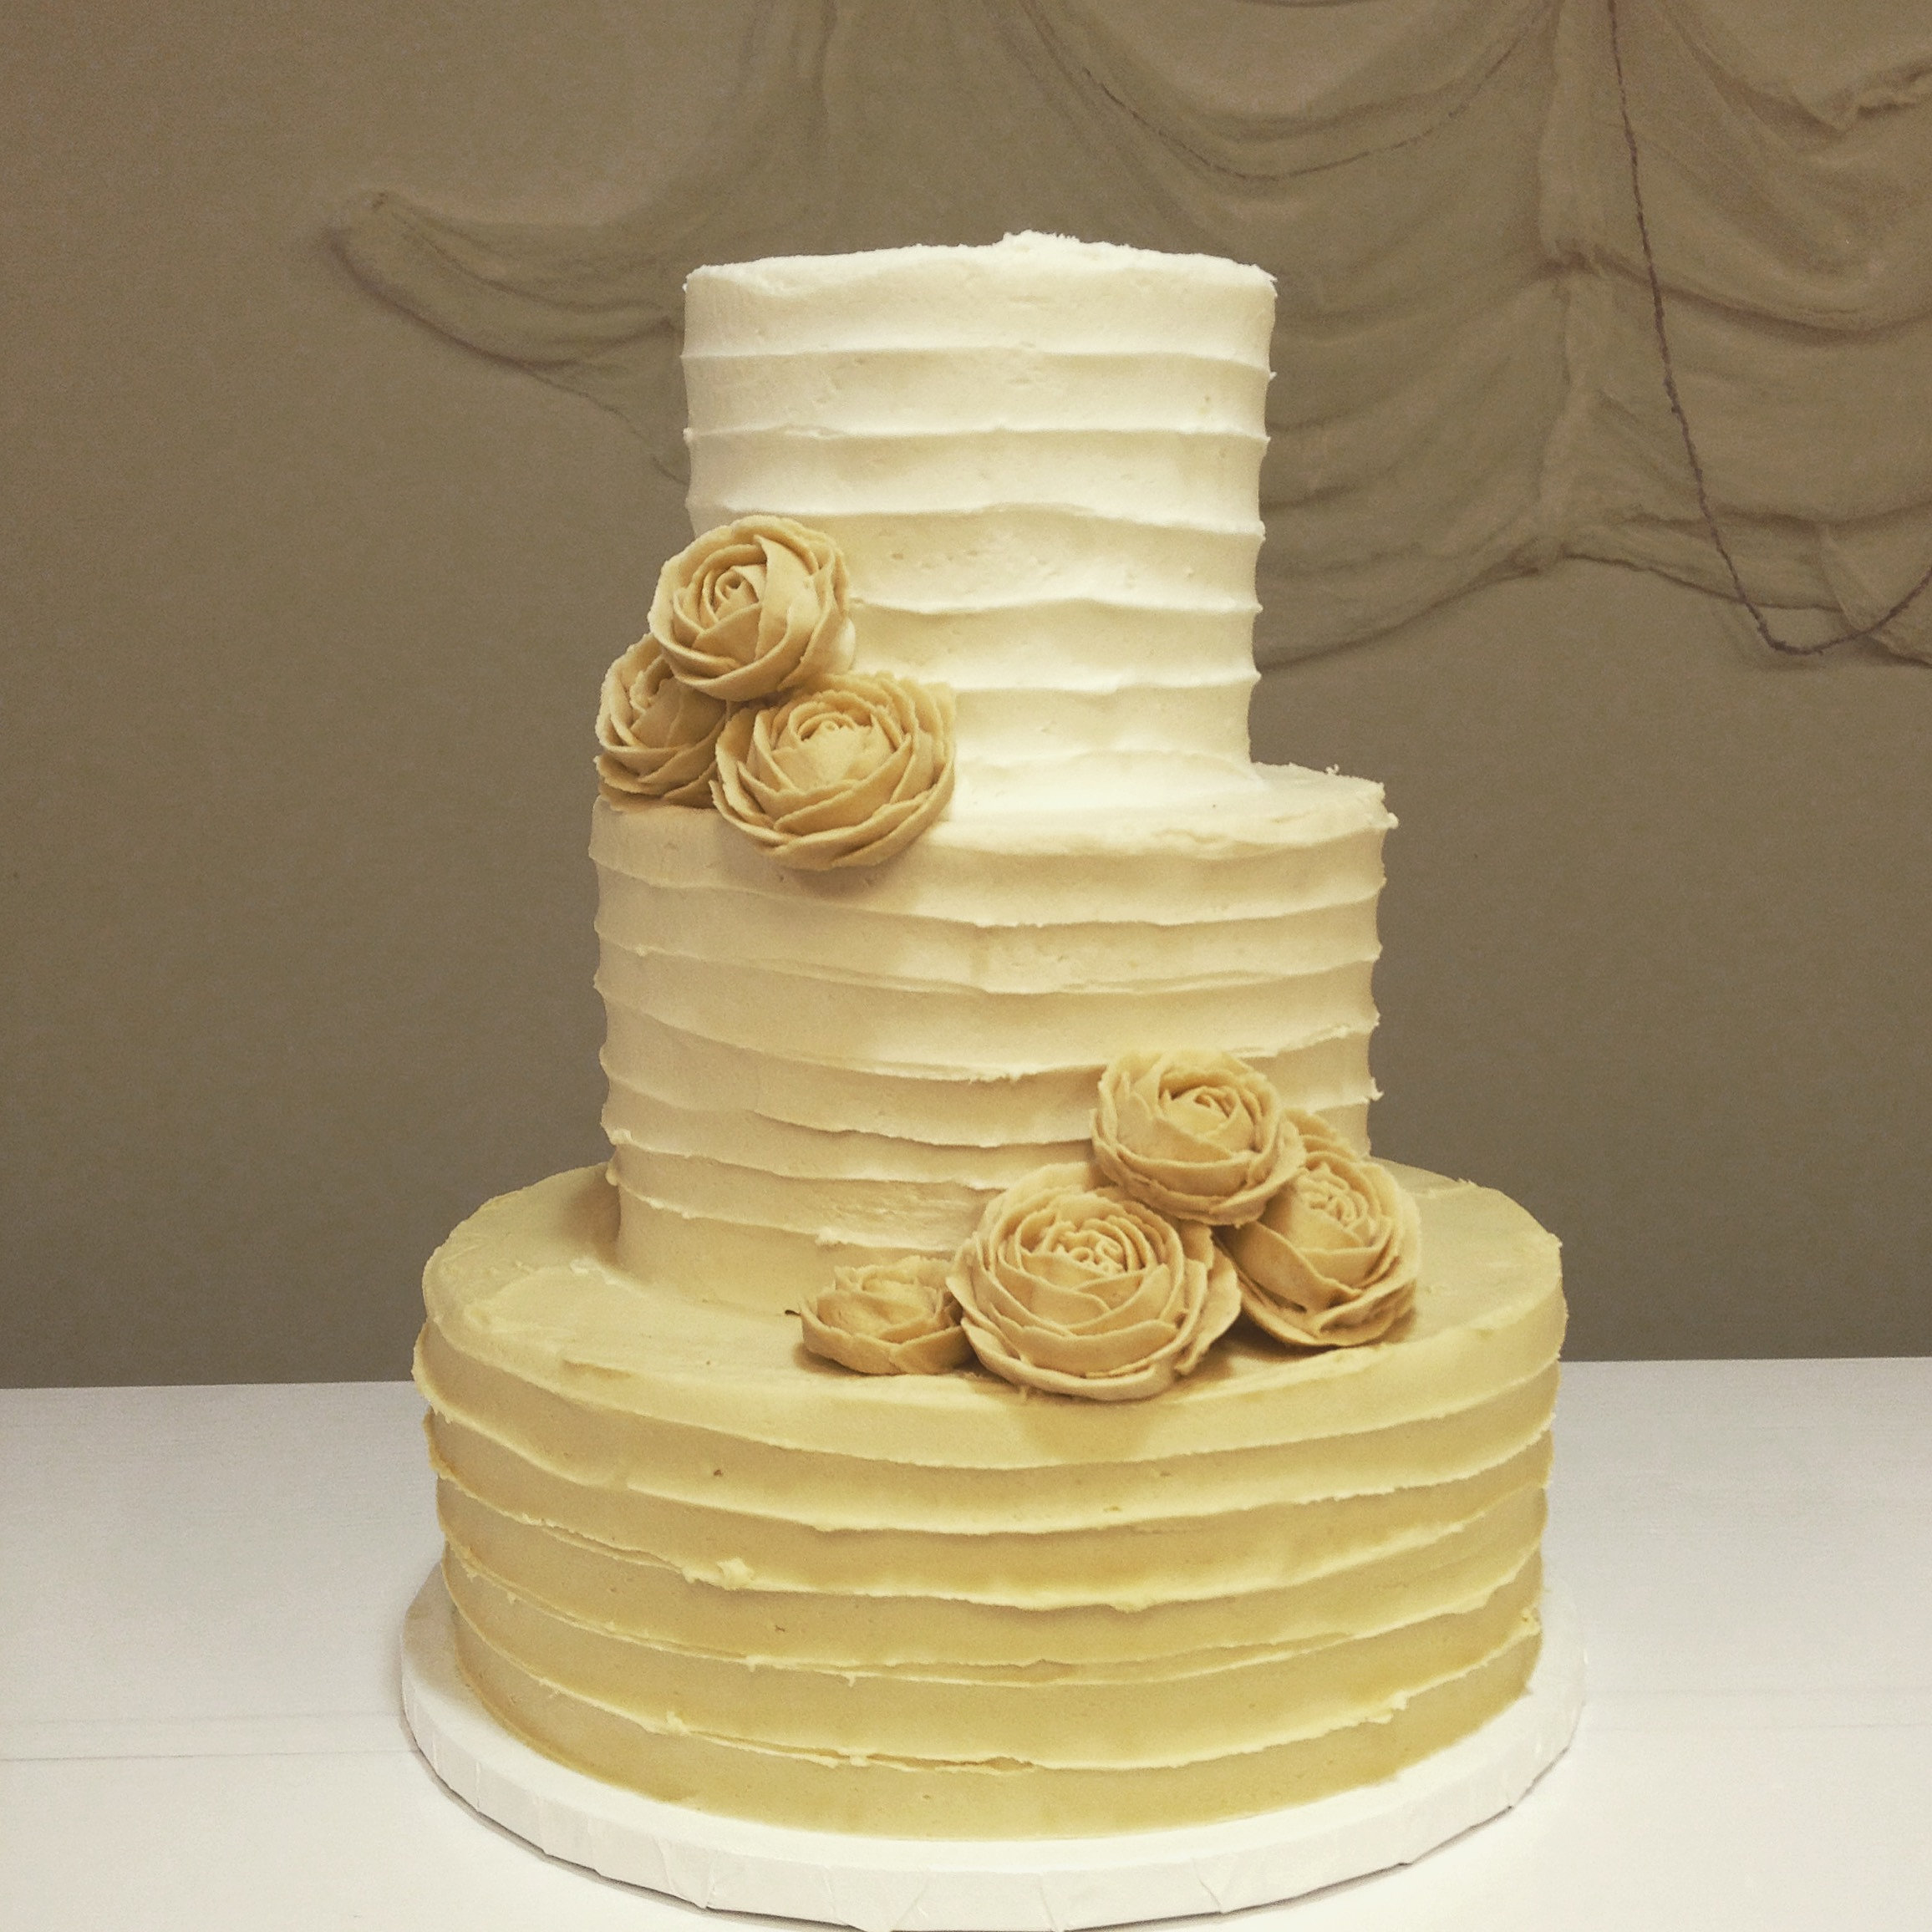 happy chicks bakery wedding cakes birthday treats lunch cincinnati champagne ombre rose wedding cake cincinnati